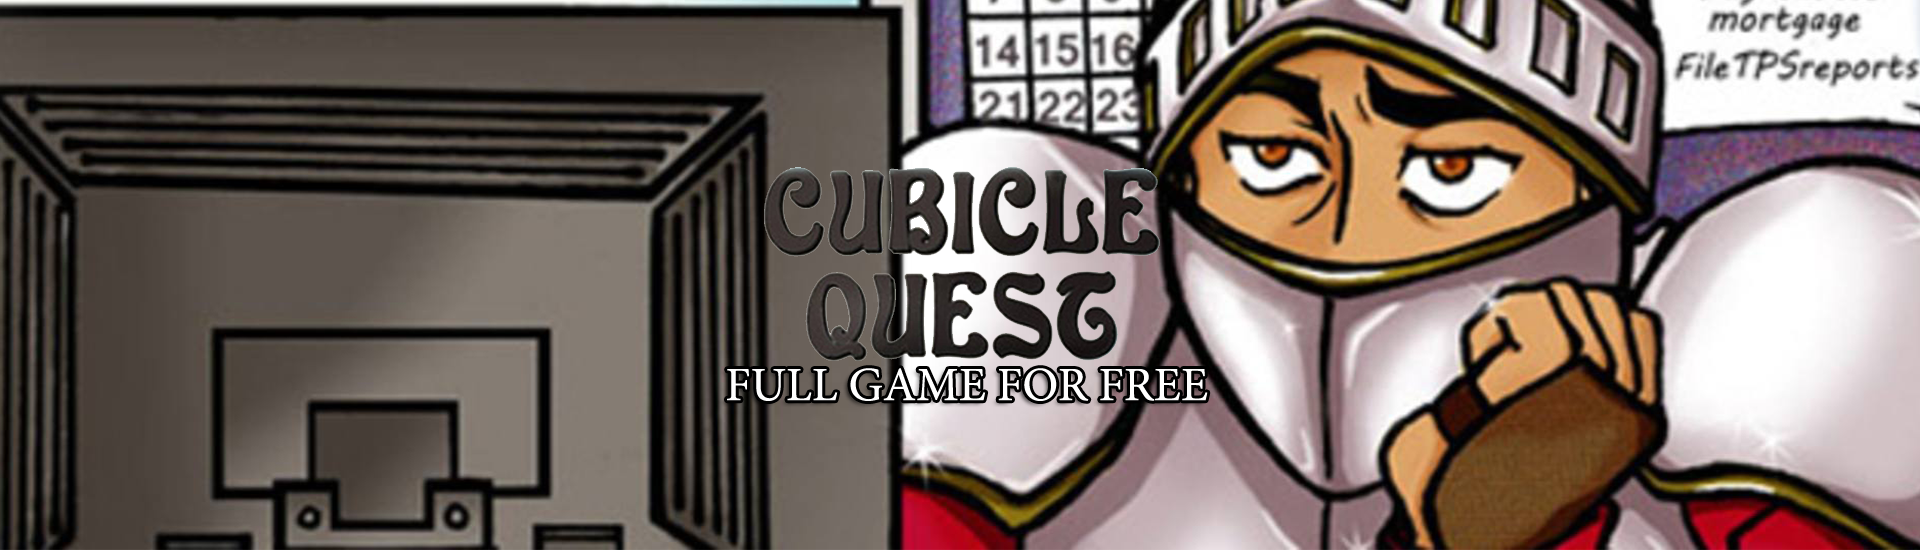 Cubicle Quest cover